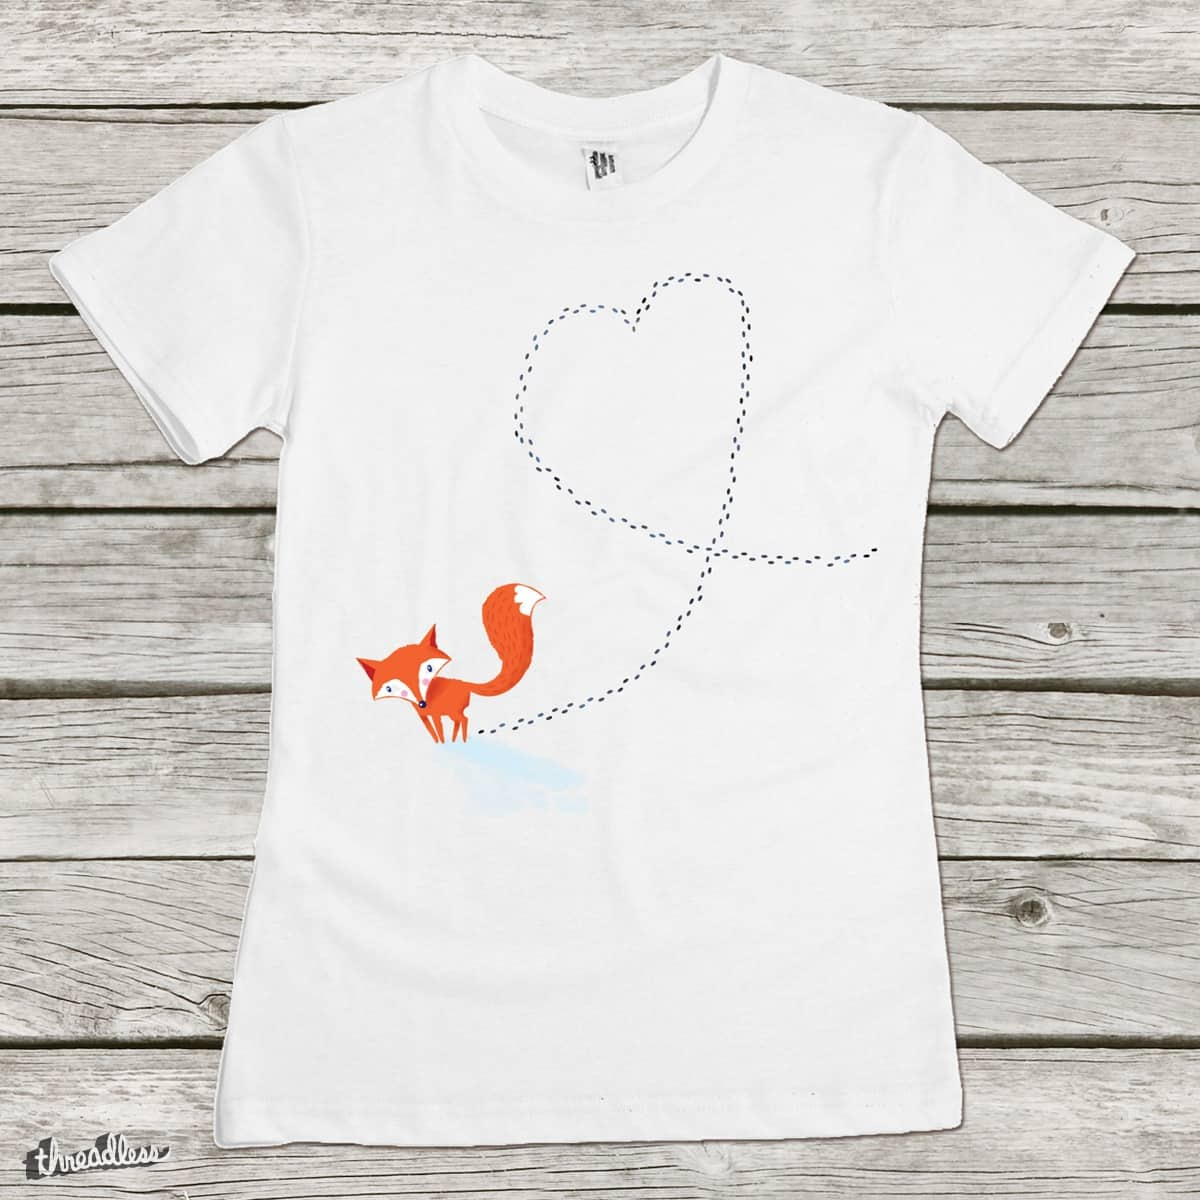 Foxy Love by DinoMike on Threadless